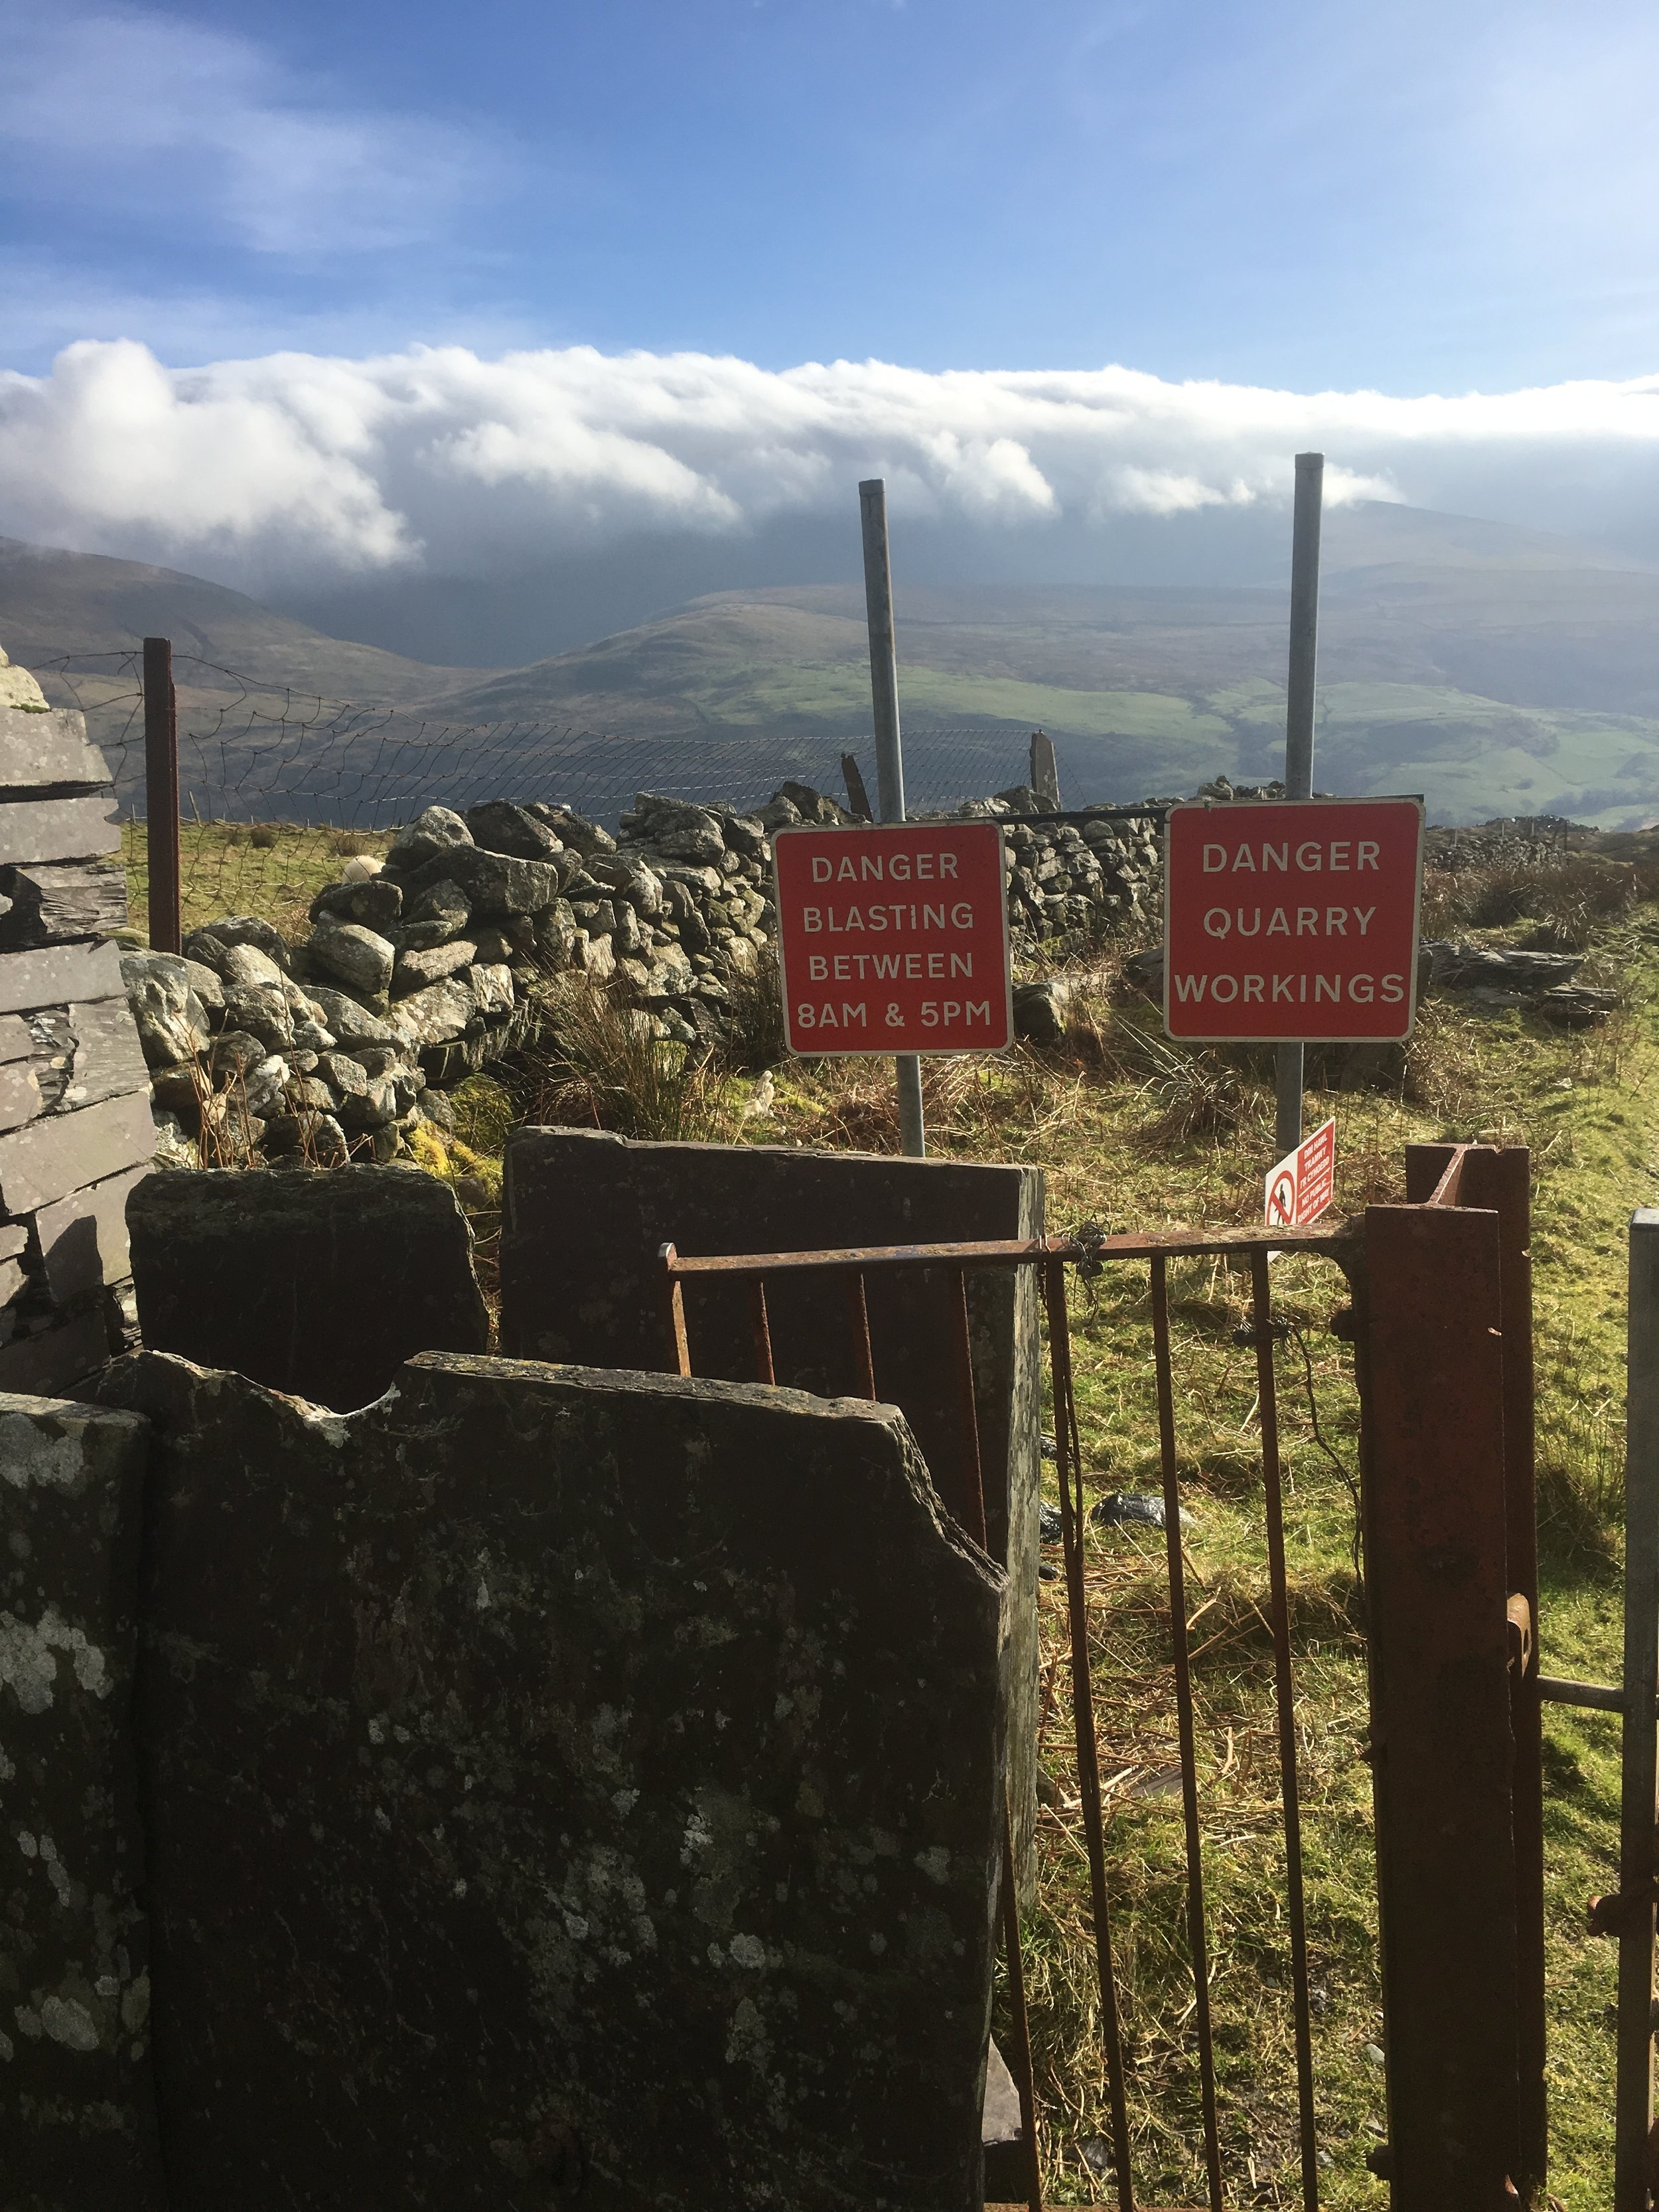 'Entrance' into Ellen Quarry in Y Fron, complete with no entry and warnings of blasting